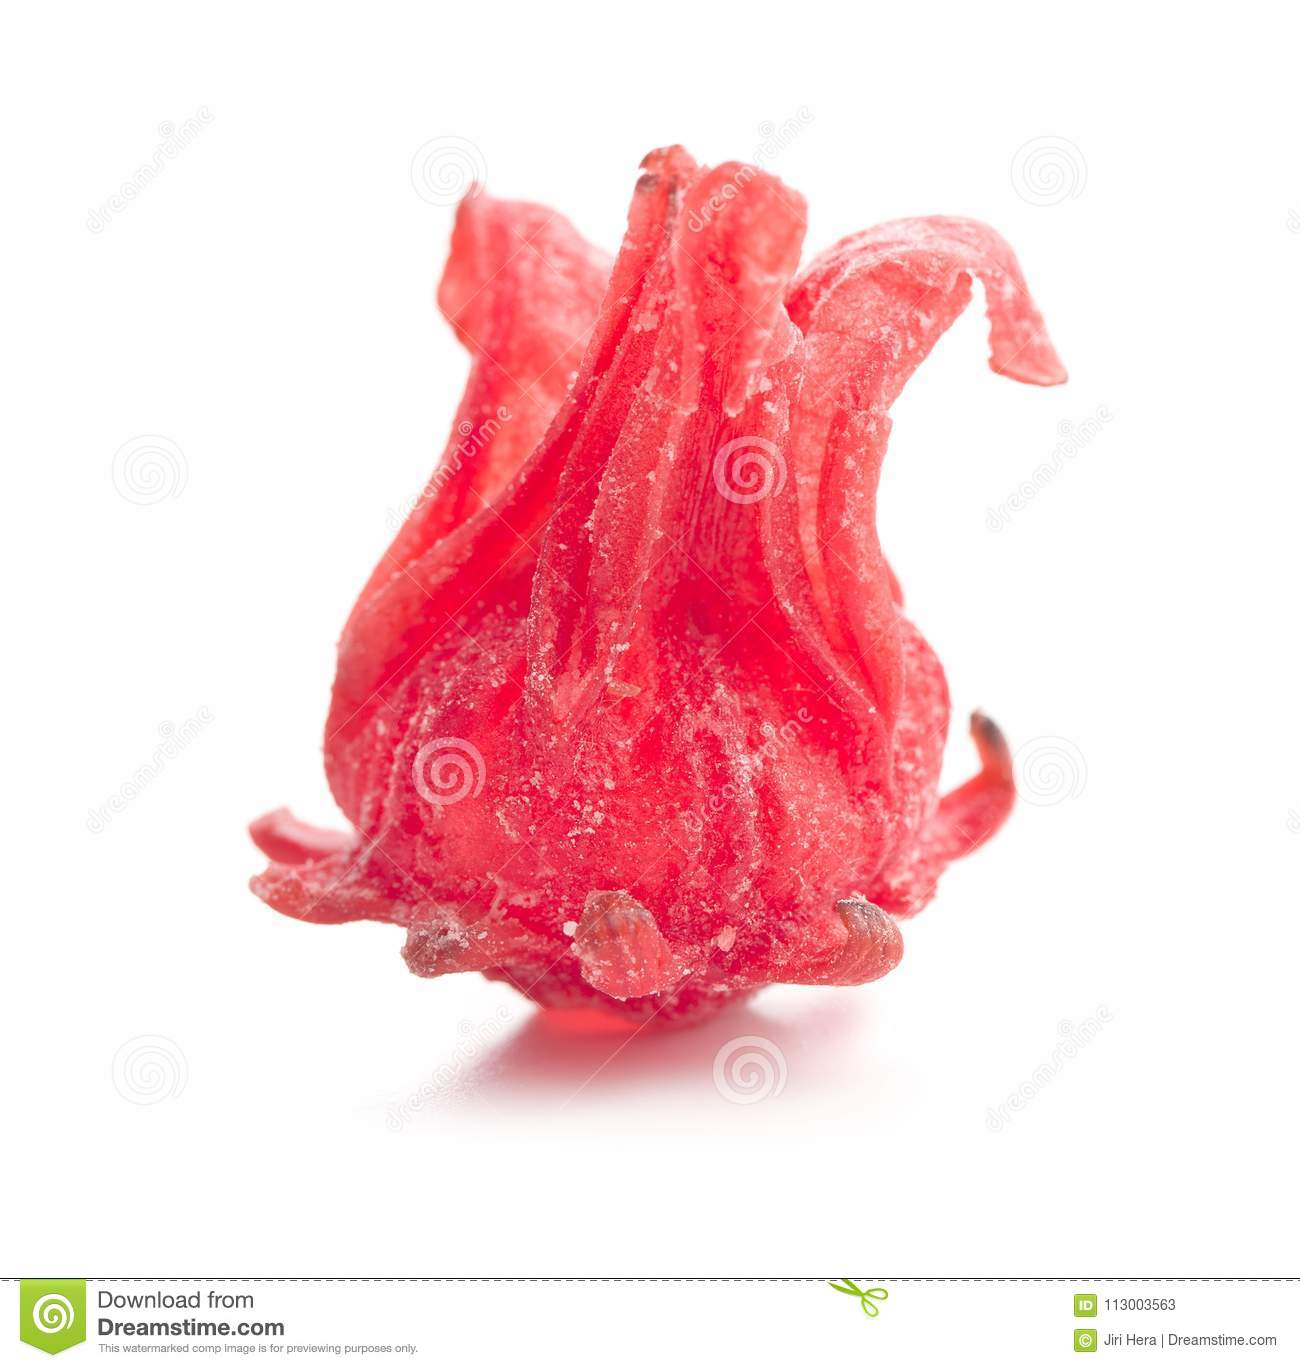 Candied Hibiscus Flower Stock Image Image Of Natural 113003563